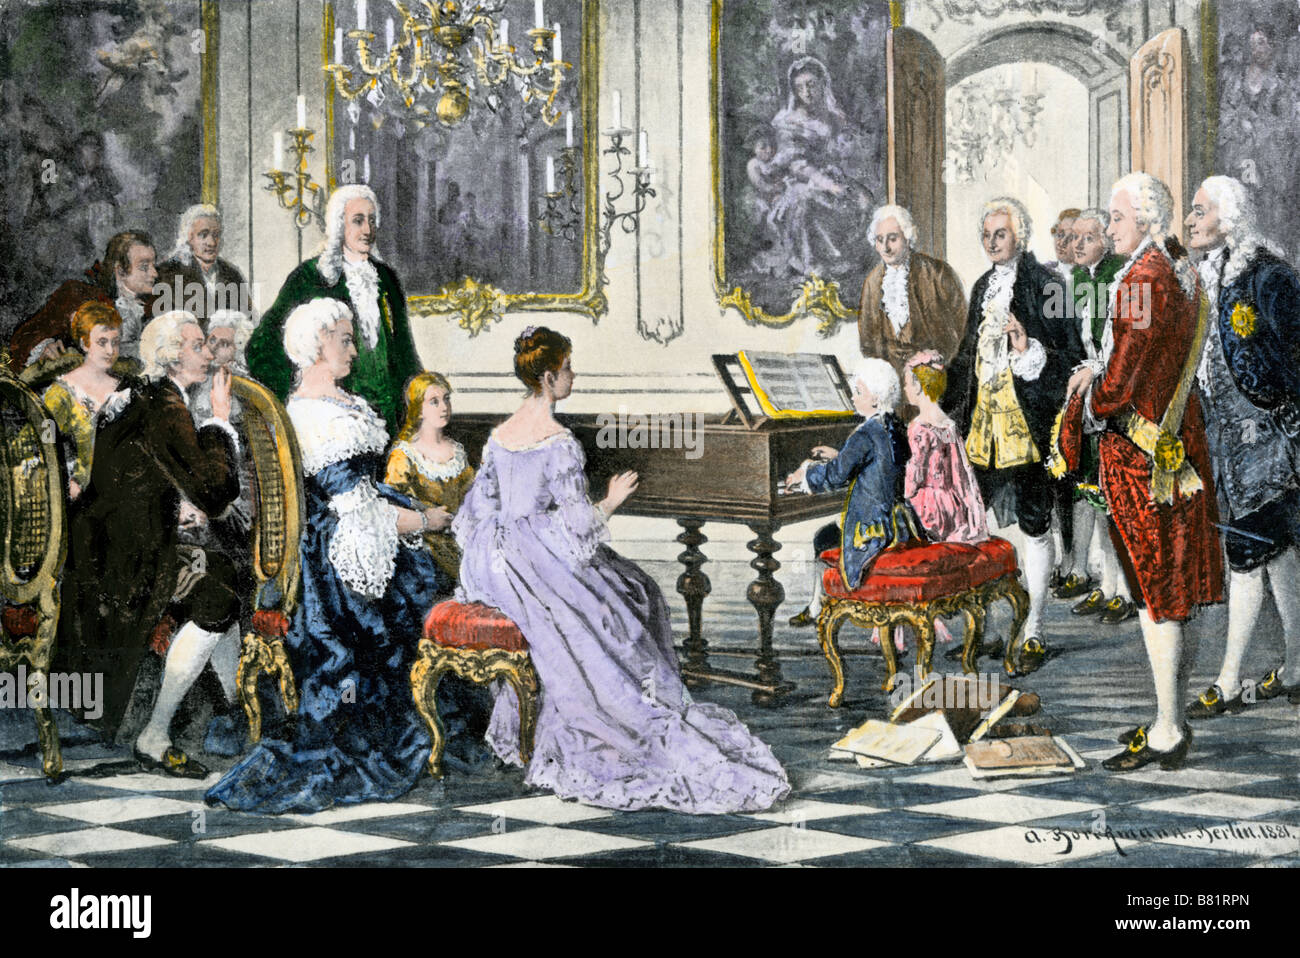 Young Mozart and his sister playing a duet for Empress Maria Theresa of Austria. Hand-colored halftone of an illustration - Stock Image